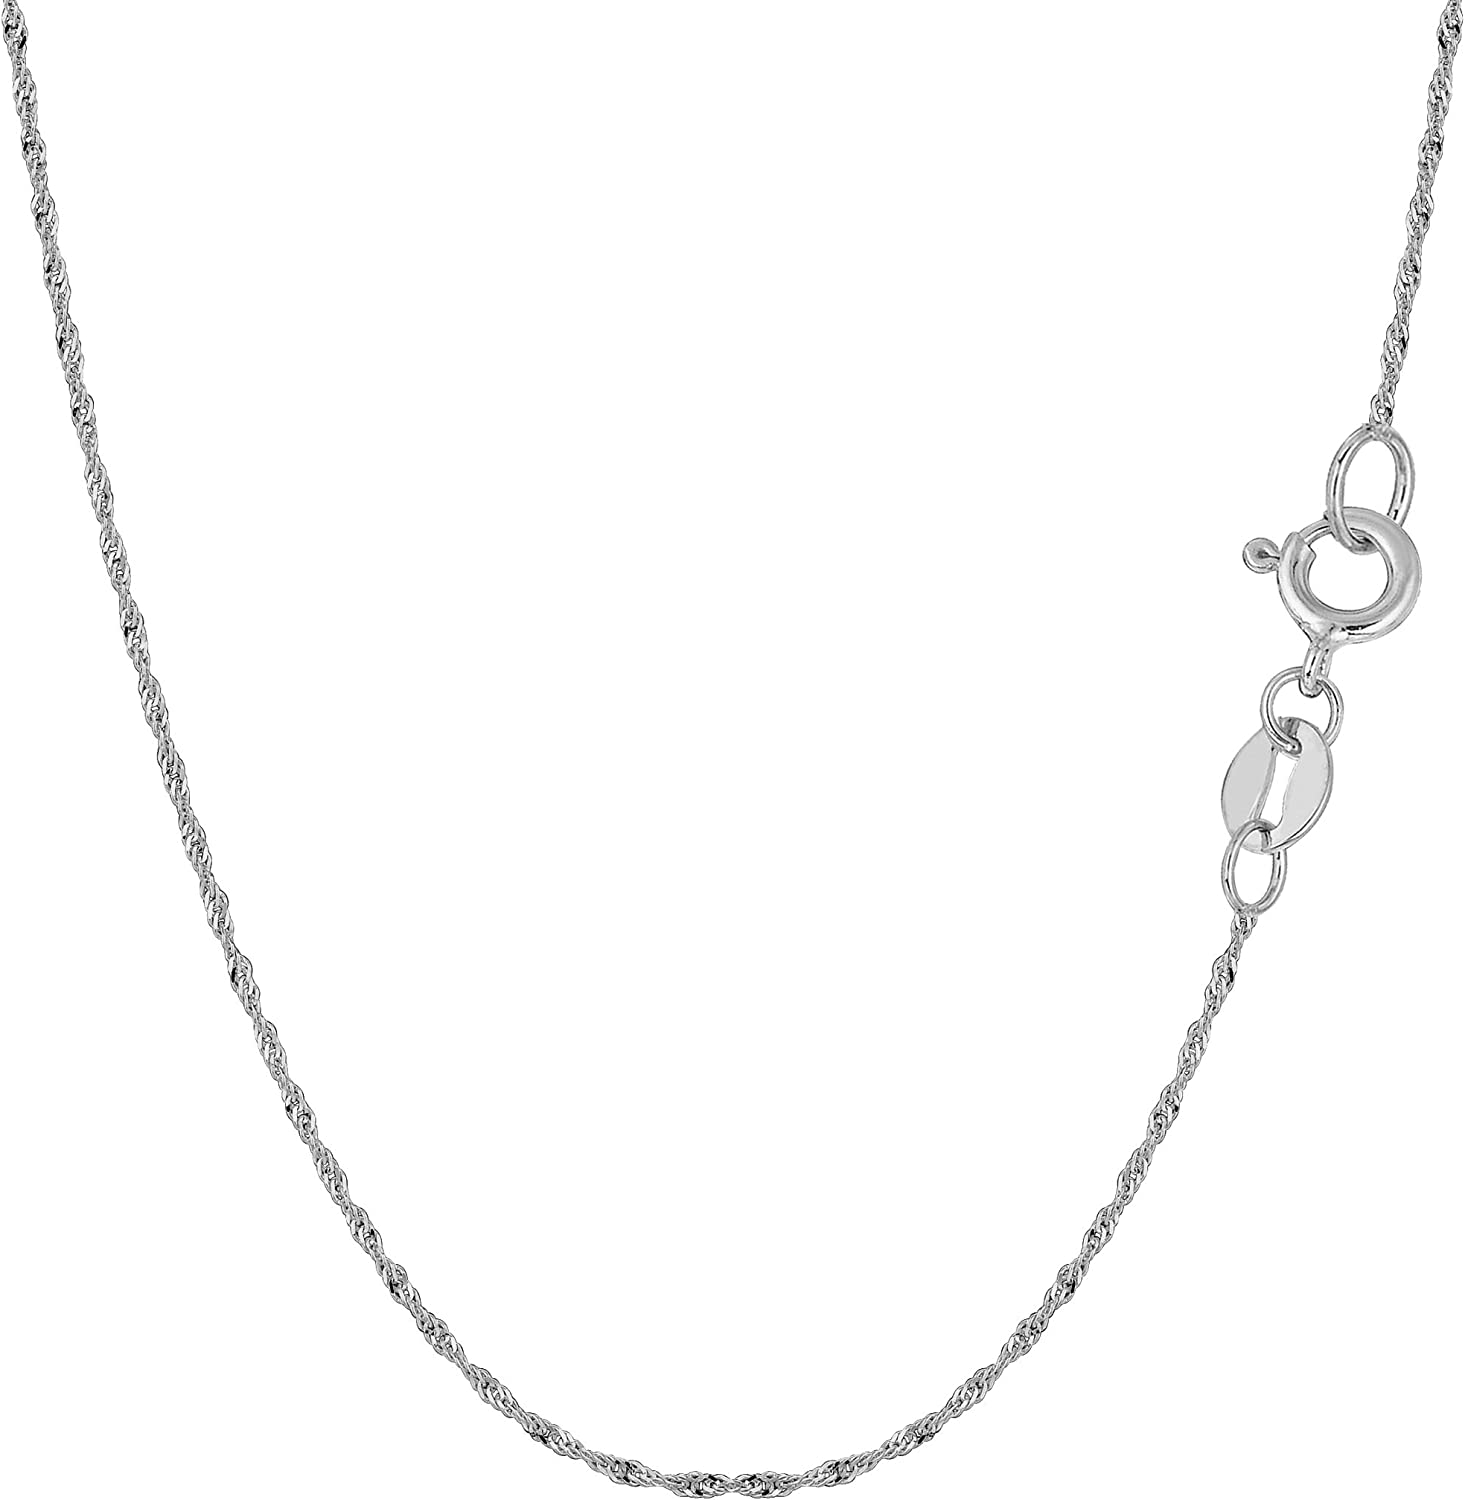 FB Jewels Solid 10K White Gold 1.5mm Machine Made White Gold Rope Chain Bracelet//Anklet